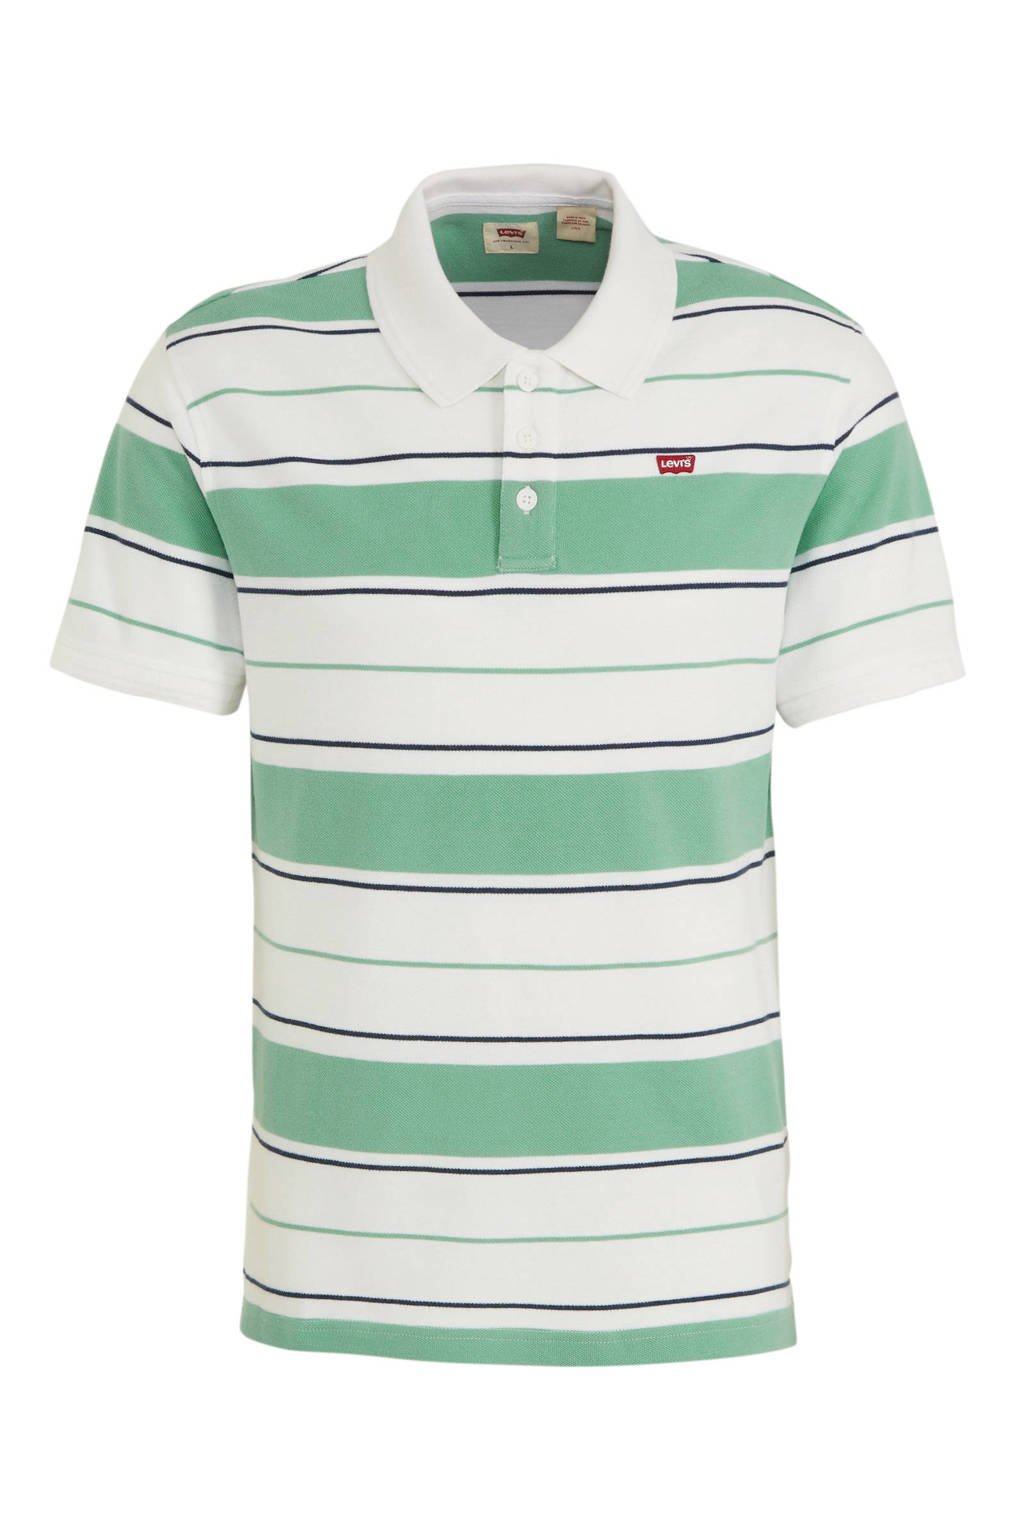 Levi's gestreepte regular fit polo wit/groen, Wit/groen